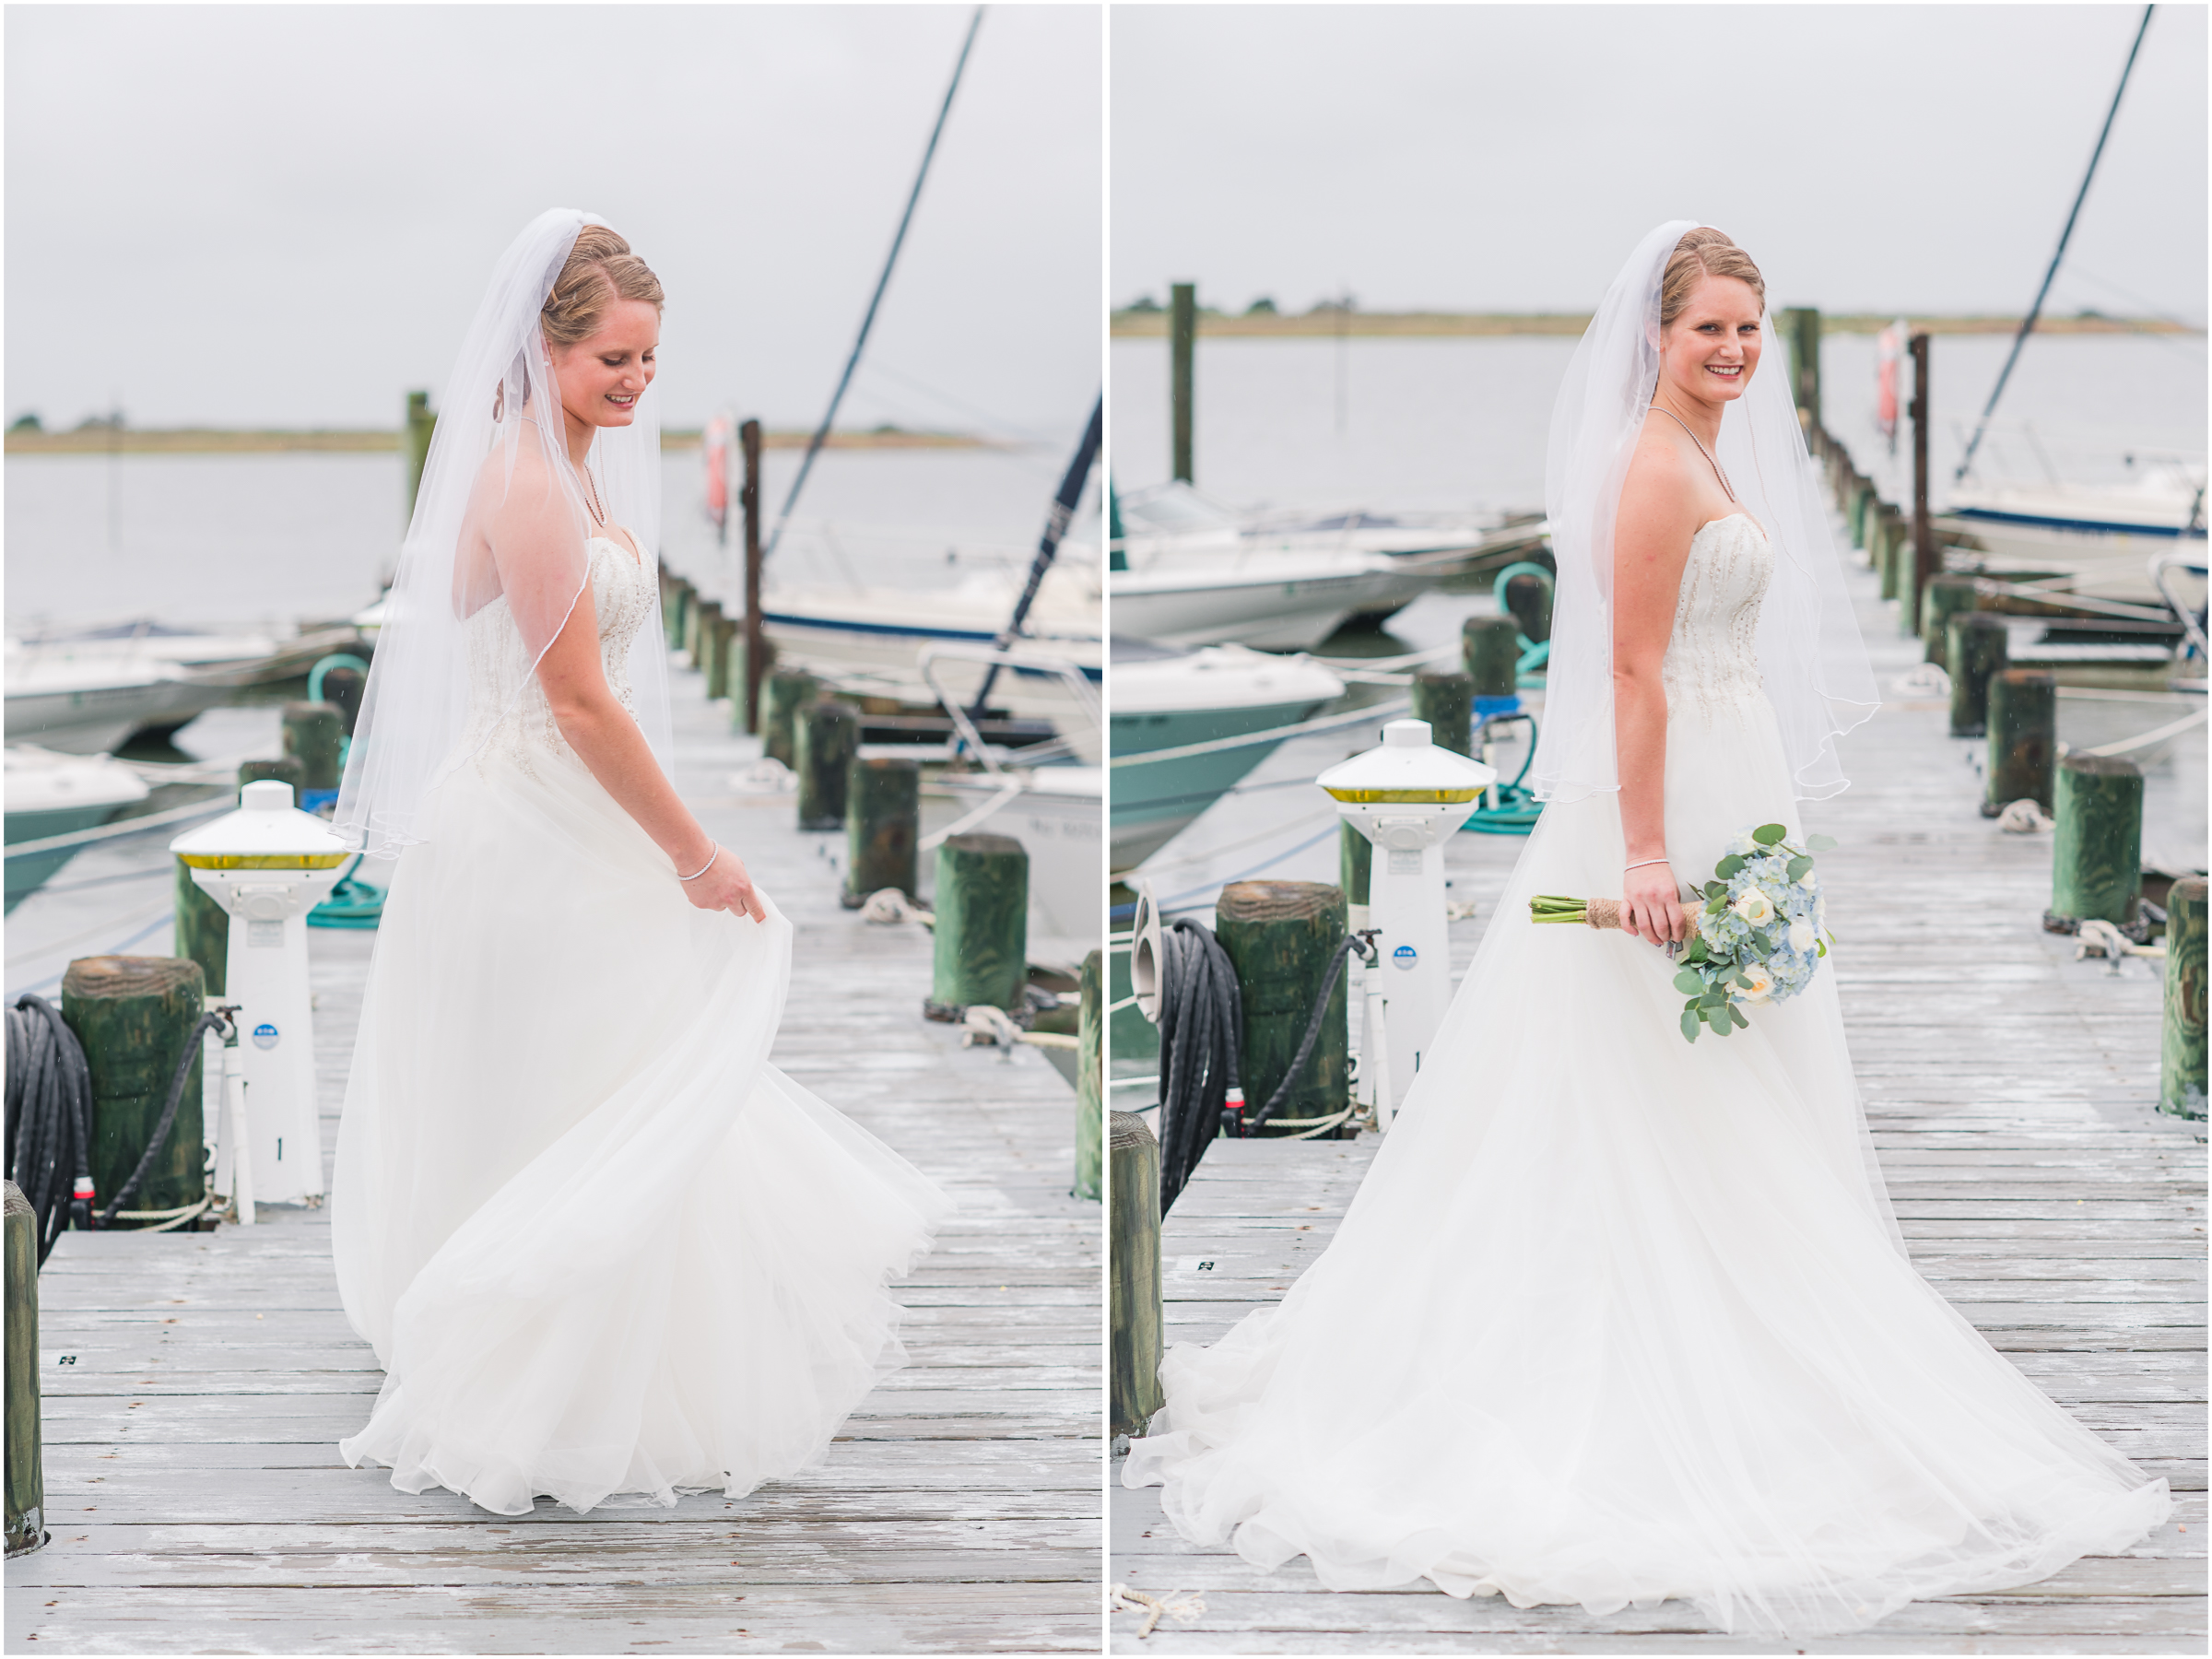 brant-beach-yacht-club-lbi-wedding-photographer-kayla-33.jpg